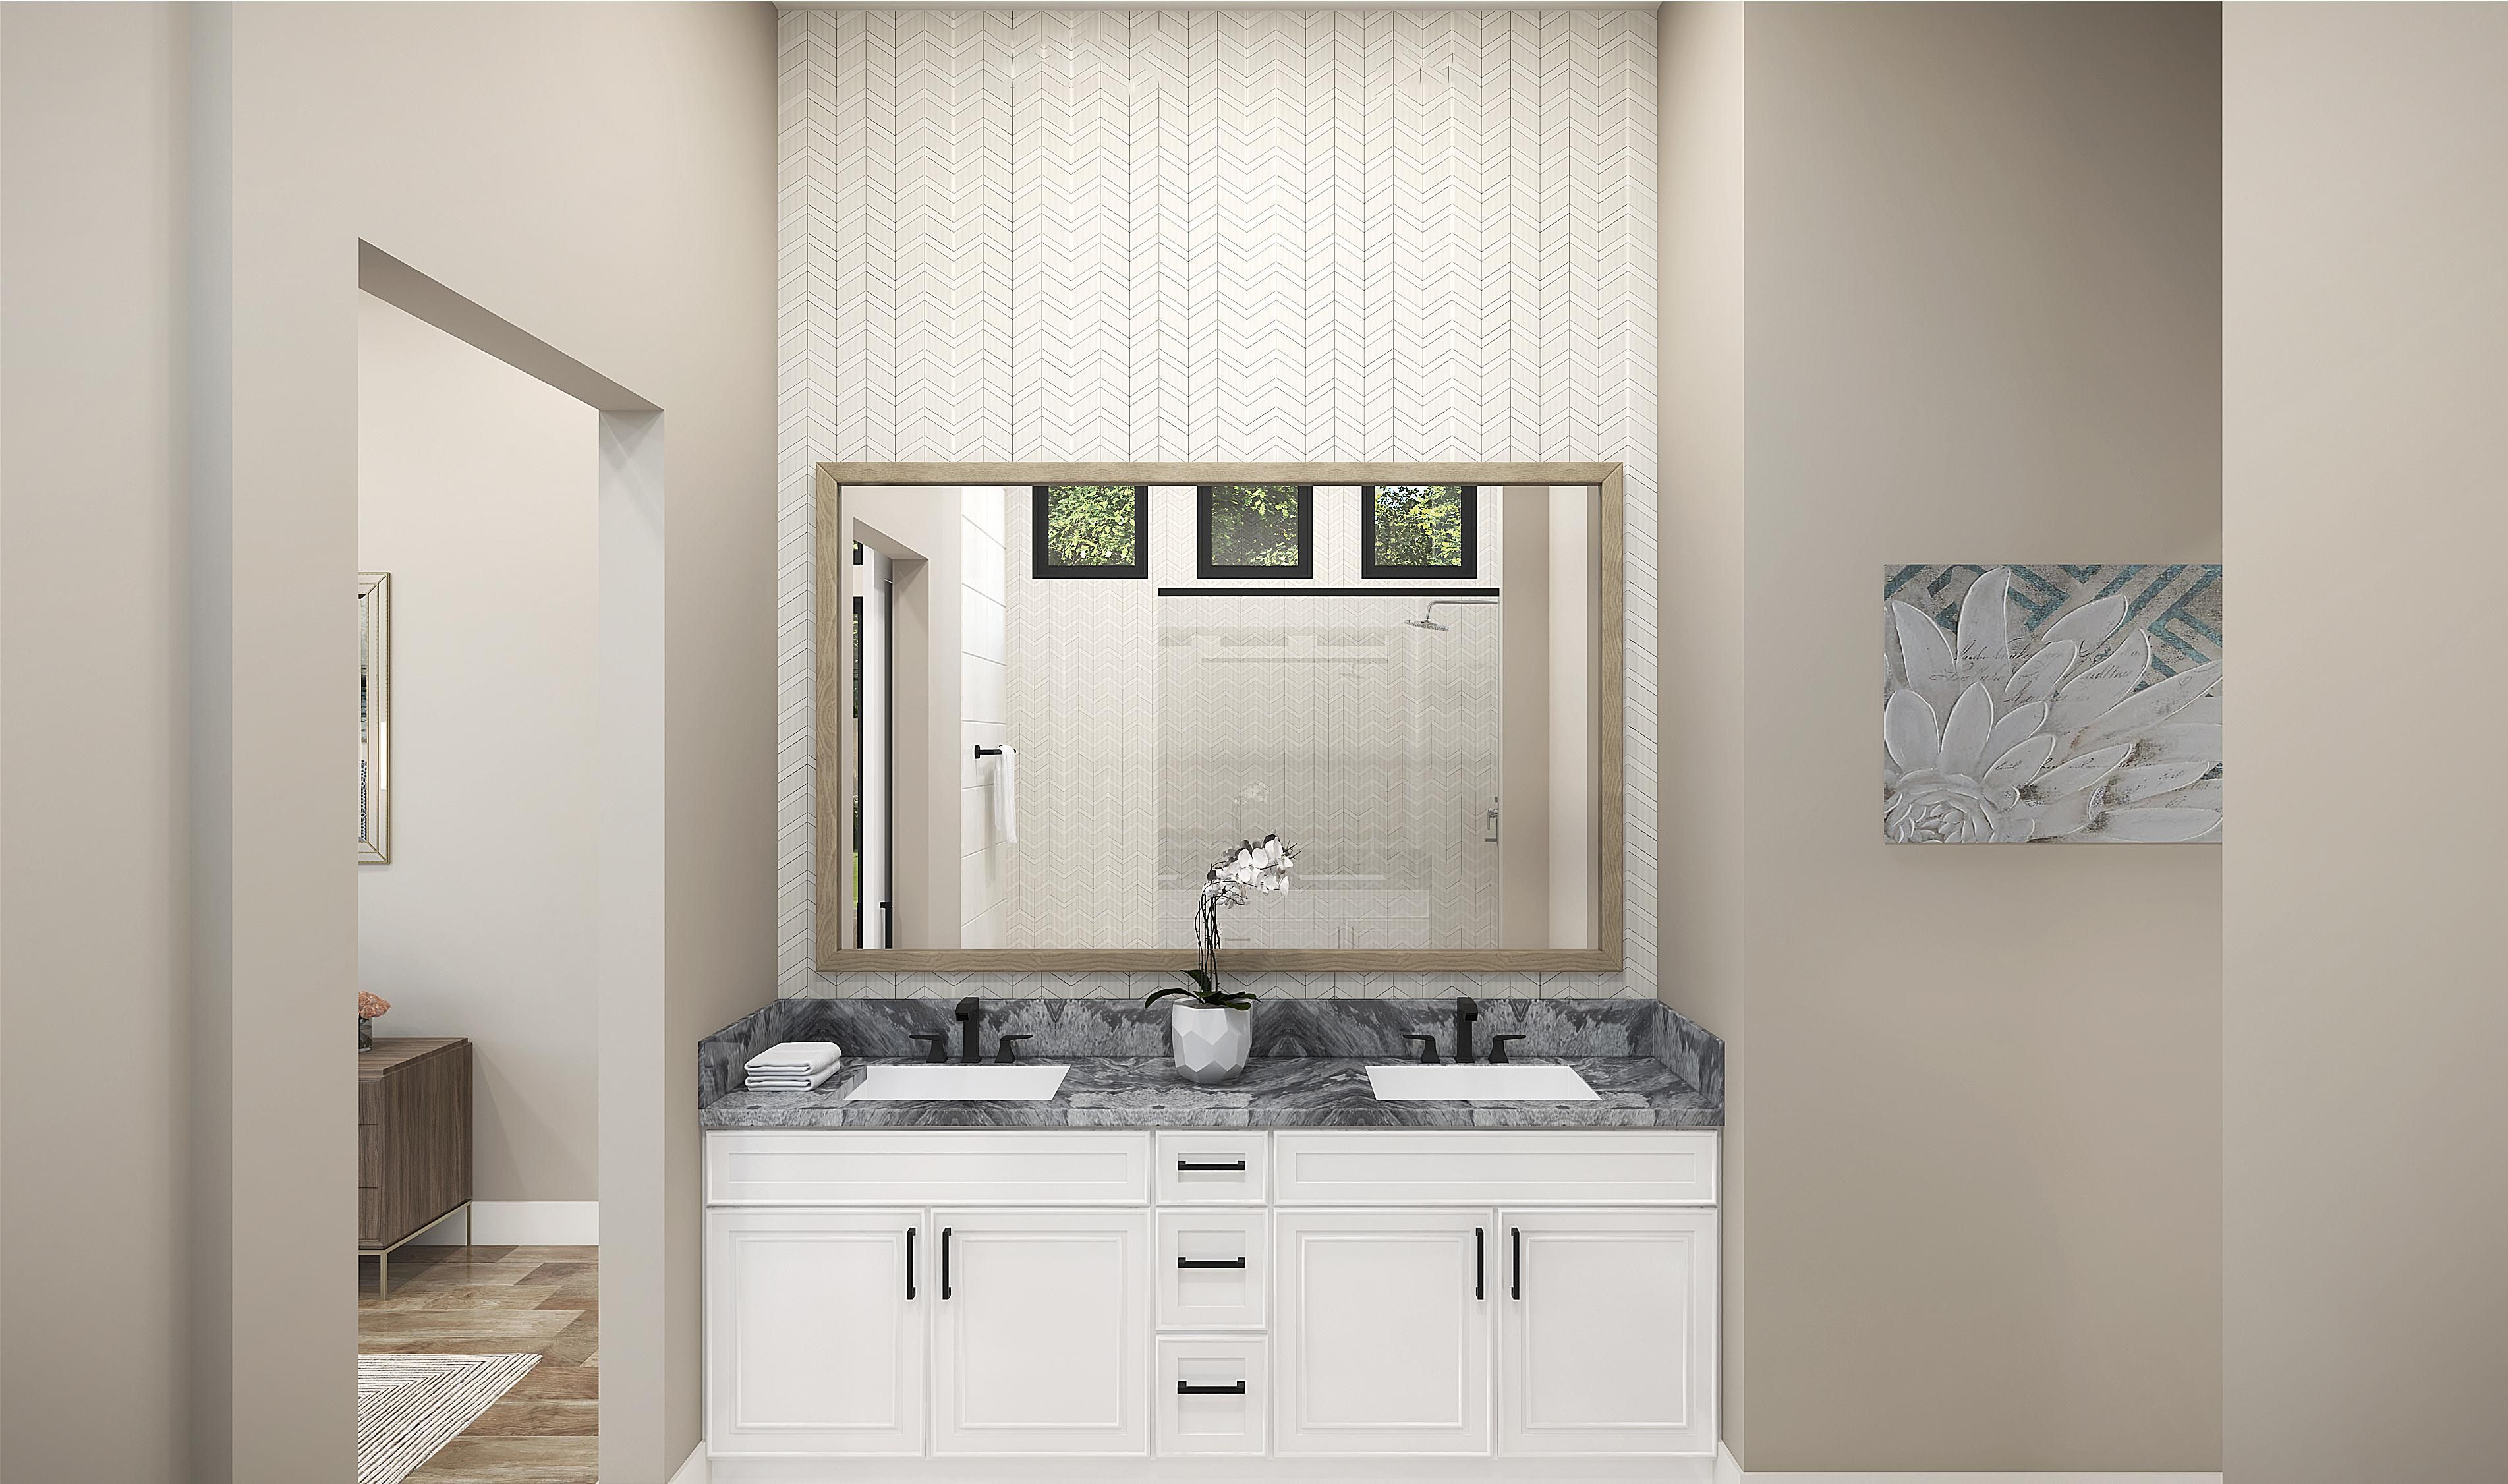 Bathroom featured in the Plan 1-C By Copper Valley  in Stockton-Lodi, CA